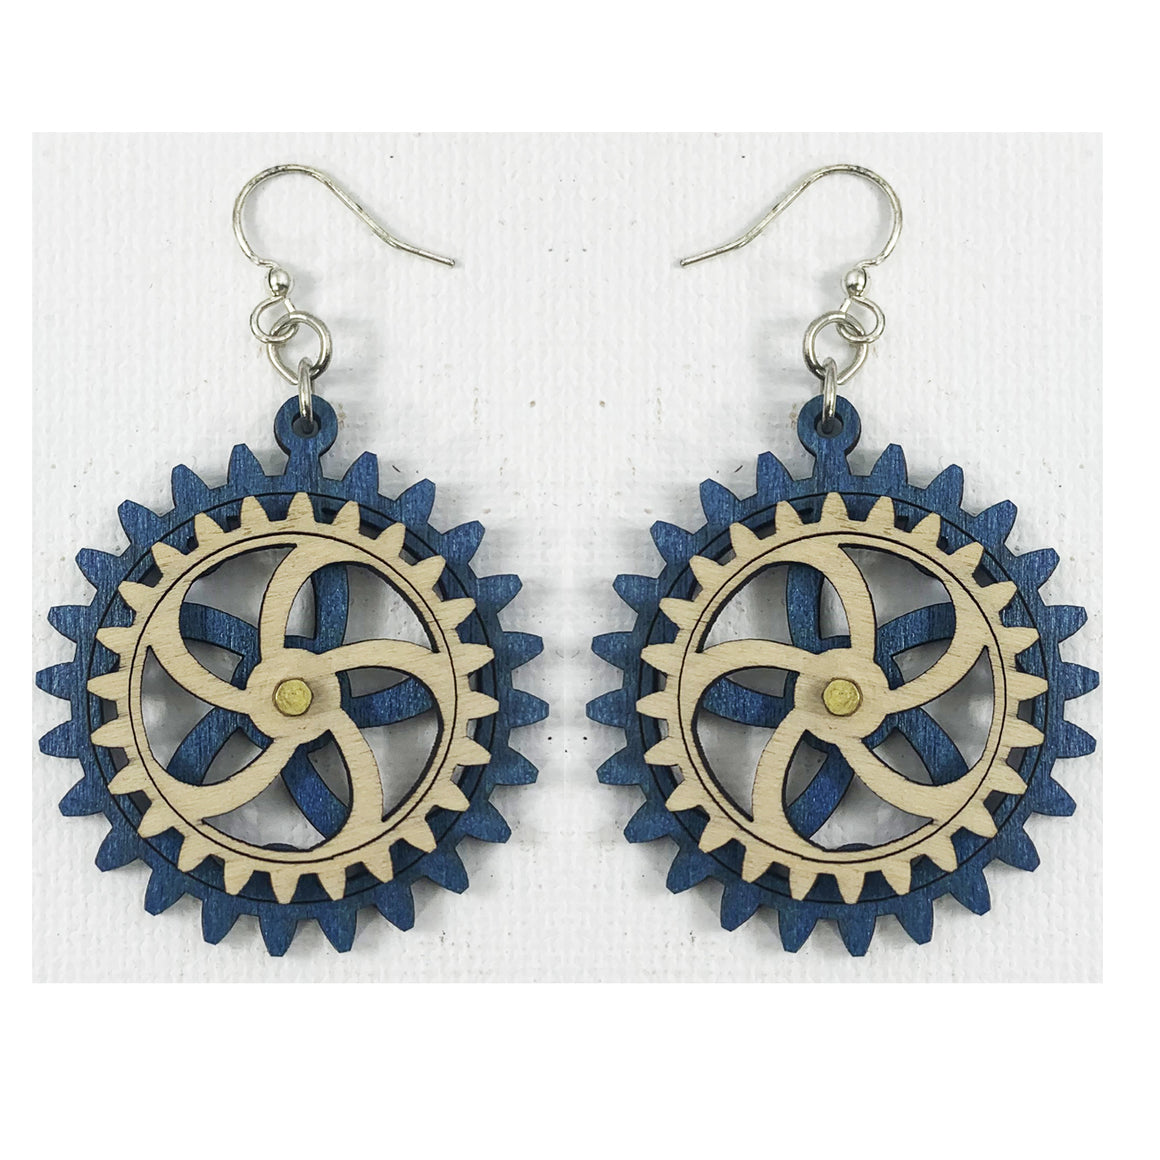 Blue Wooden Gear Earrings